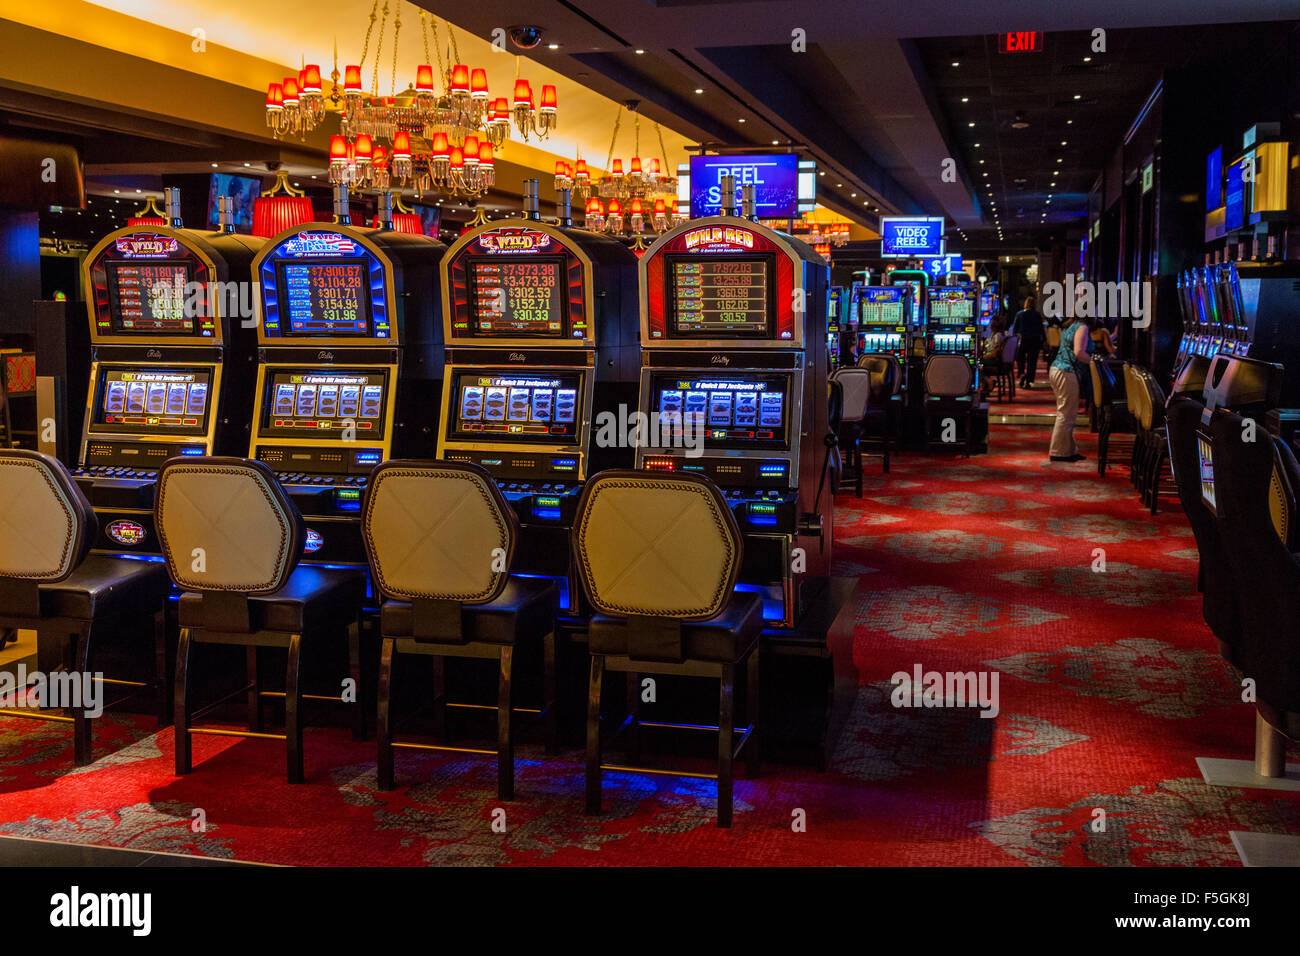 Online casino california largest casino